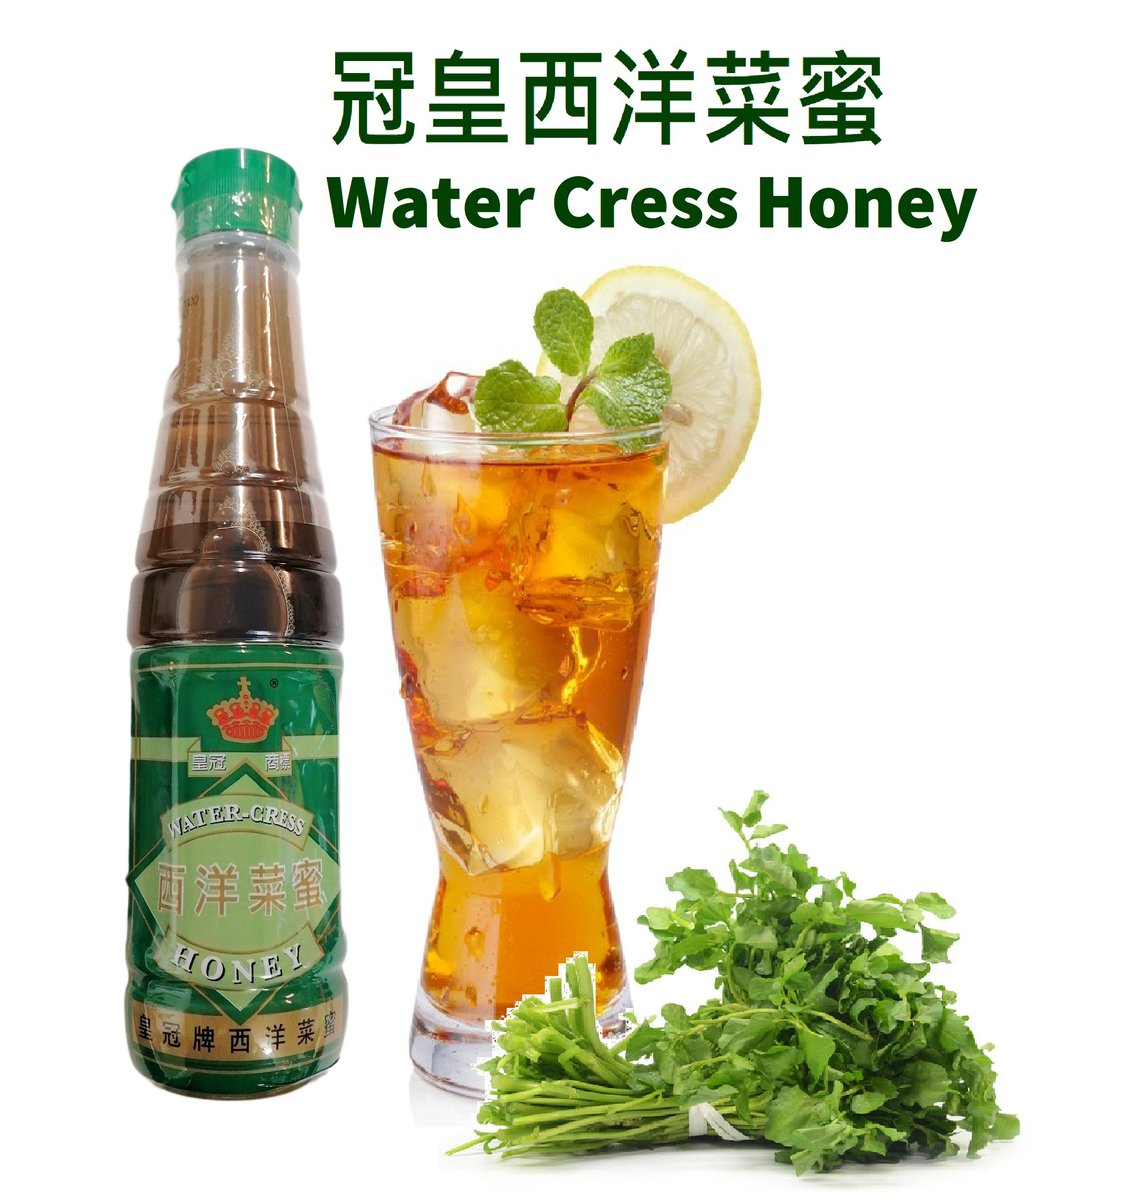 HK Style Water Cress Honey Concentrate (625g)4-5 Table Spoon add Warm/Cold Water